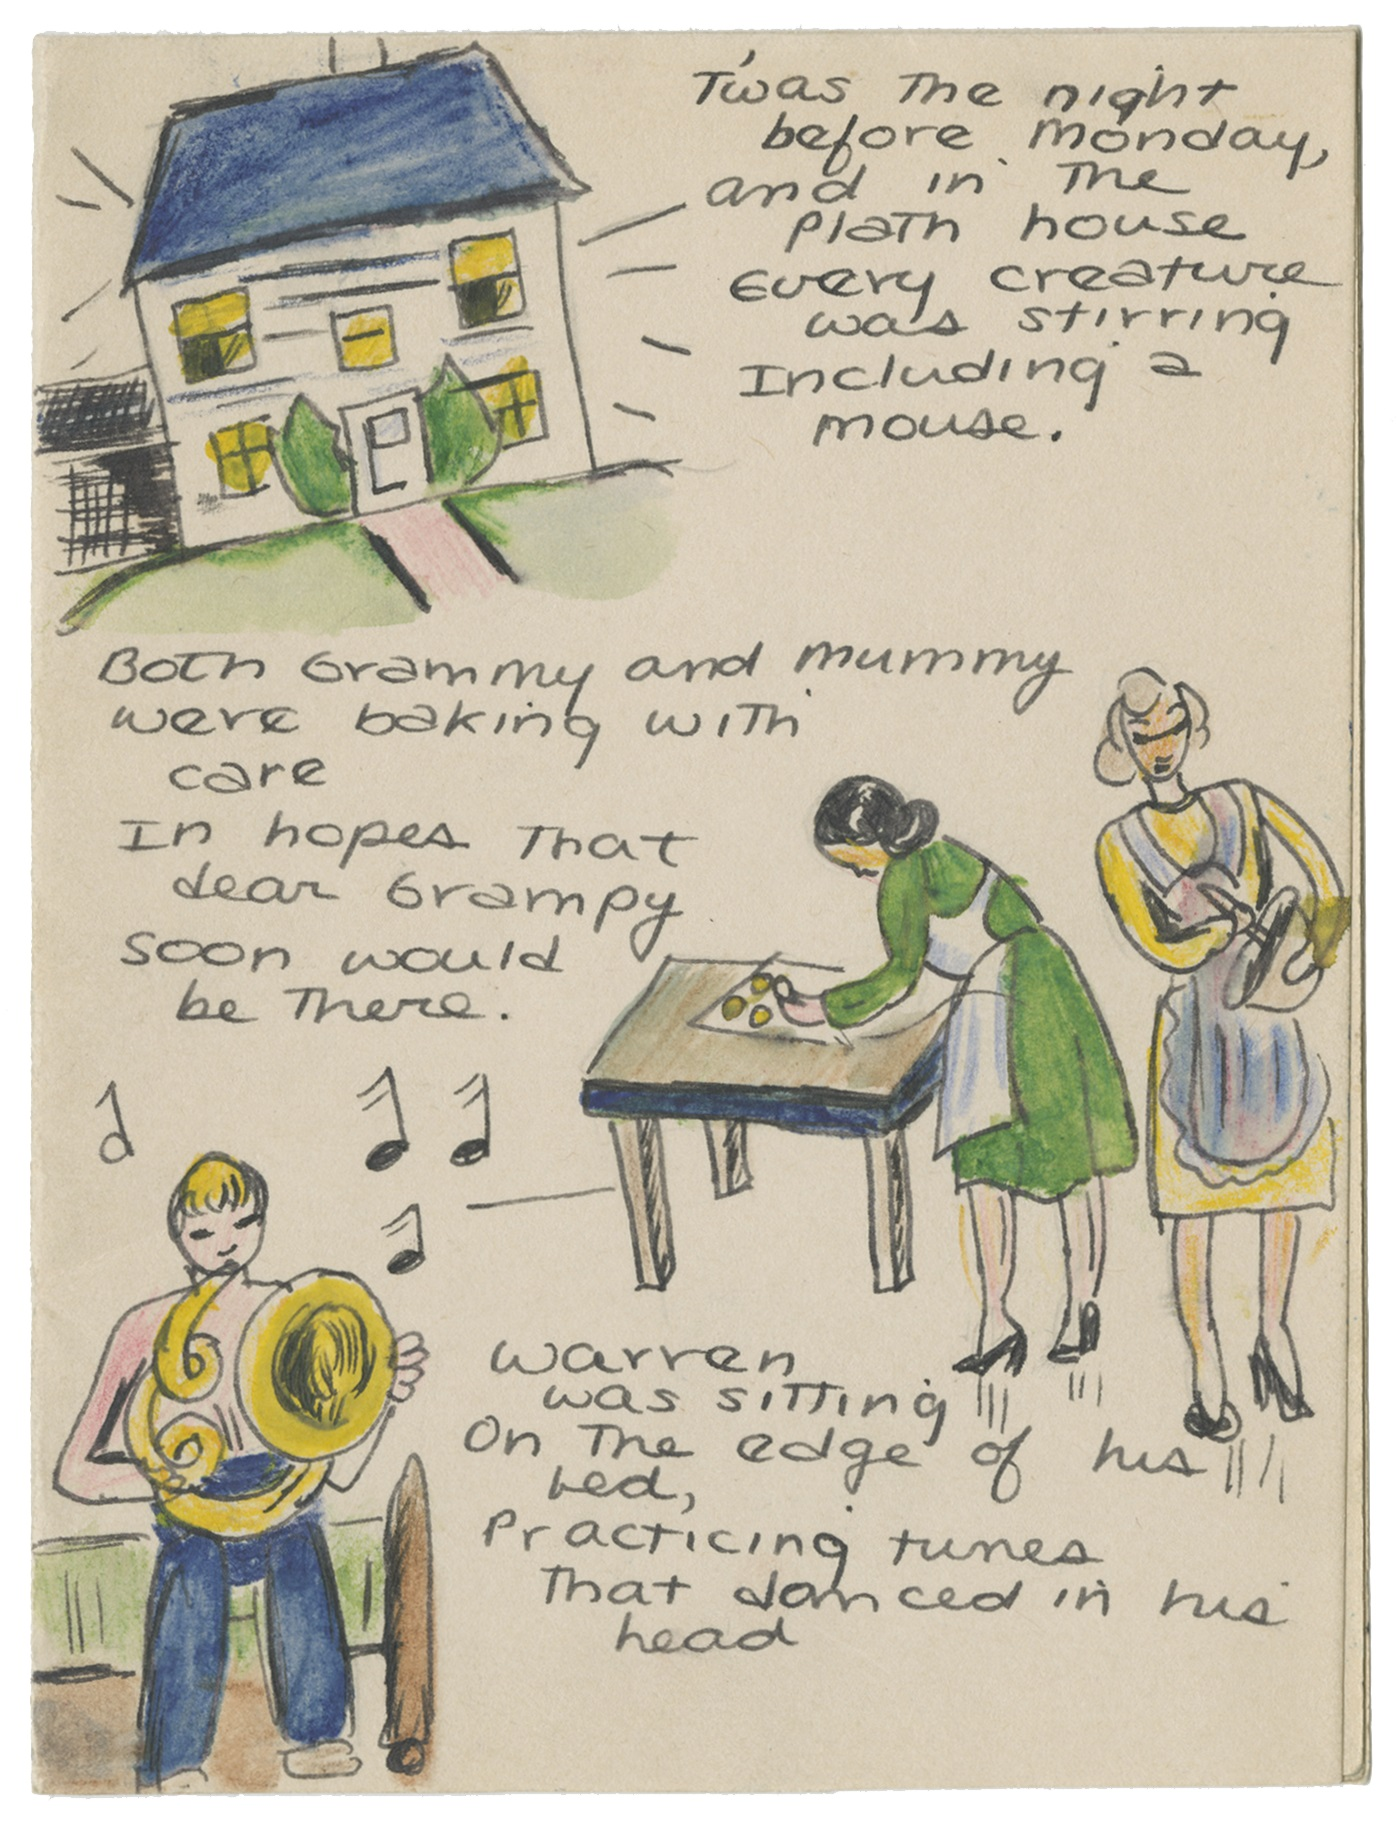 """""""Twas the Night Before Monday""""by Sylvia Plath. Courtesy The Lilly Library, Indiana University, Bloomington, Indiana. © Estate of Sylvia Plath"""